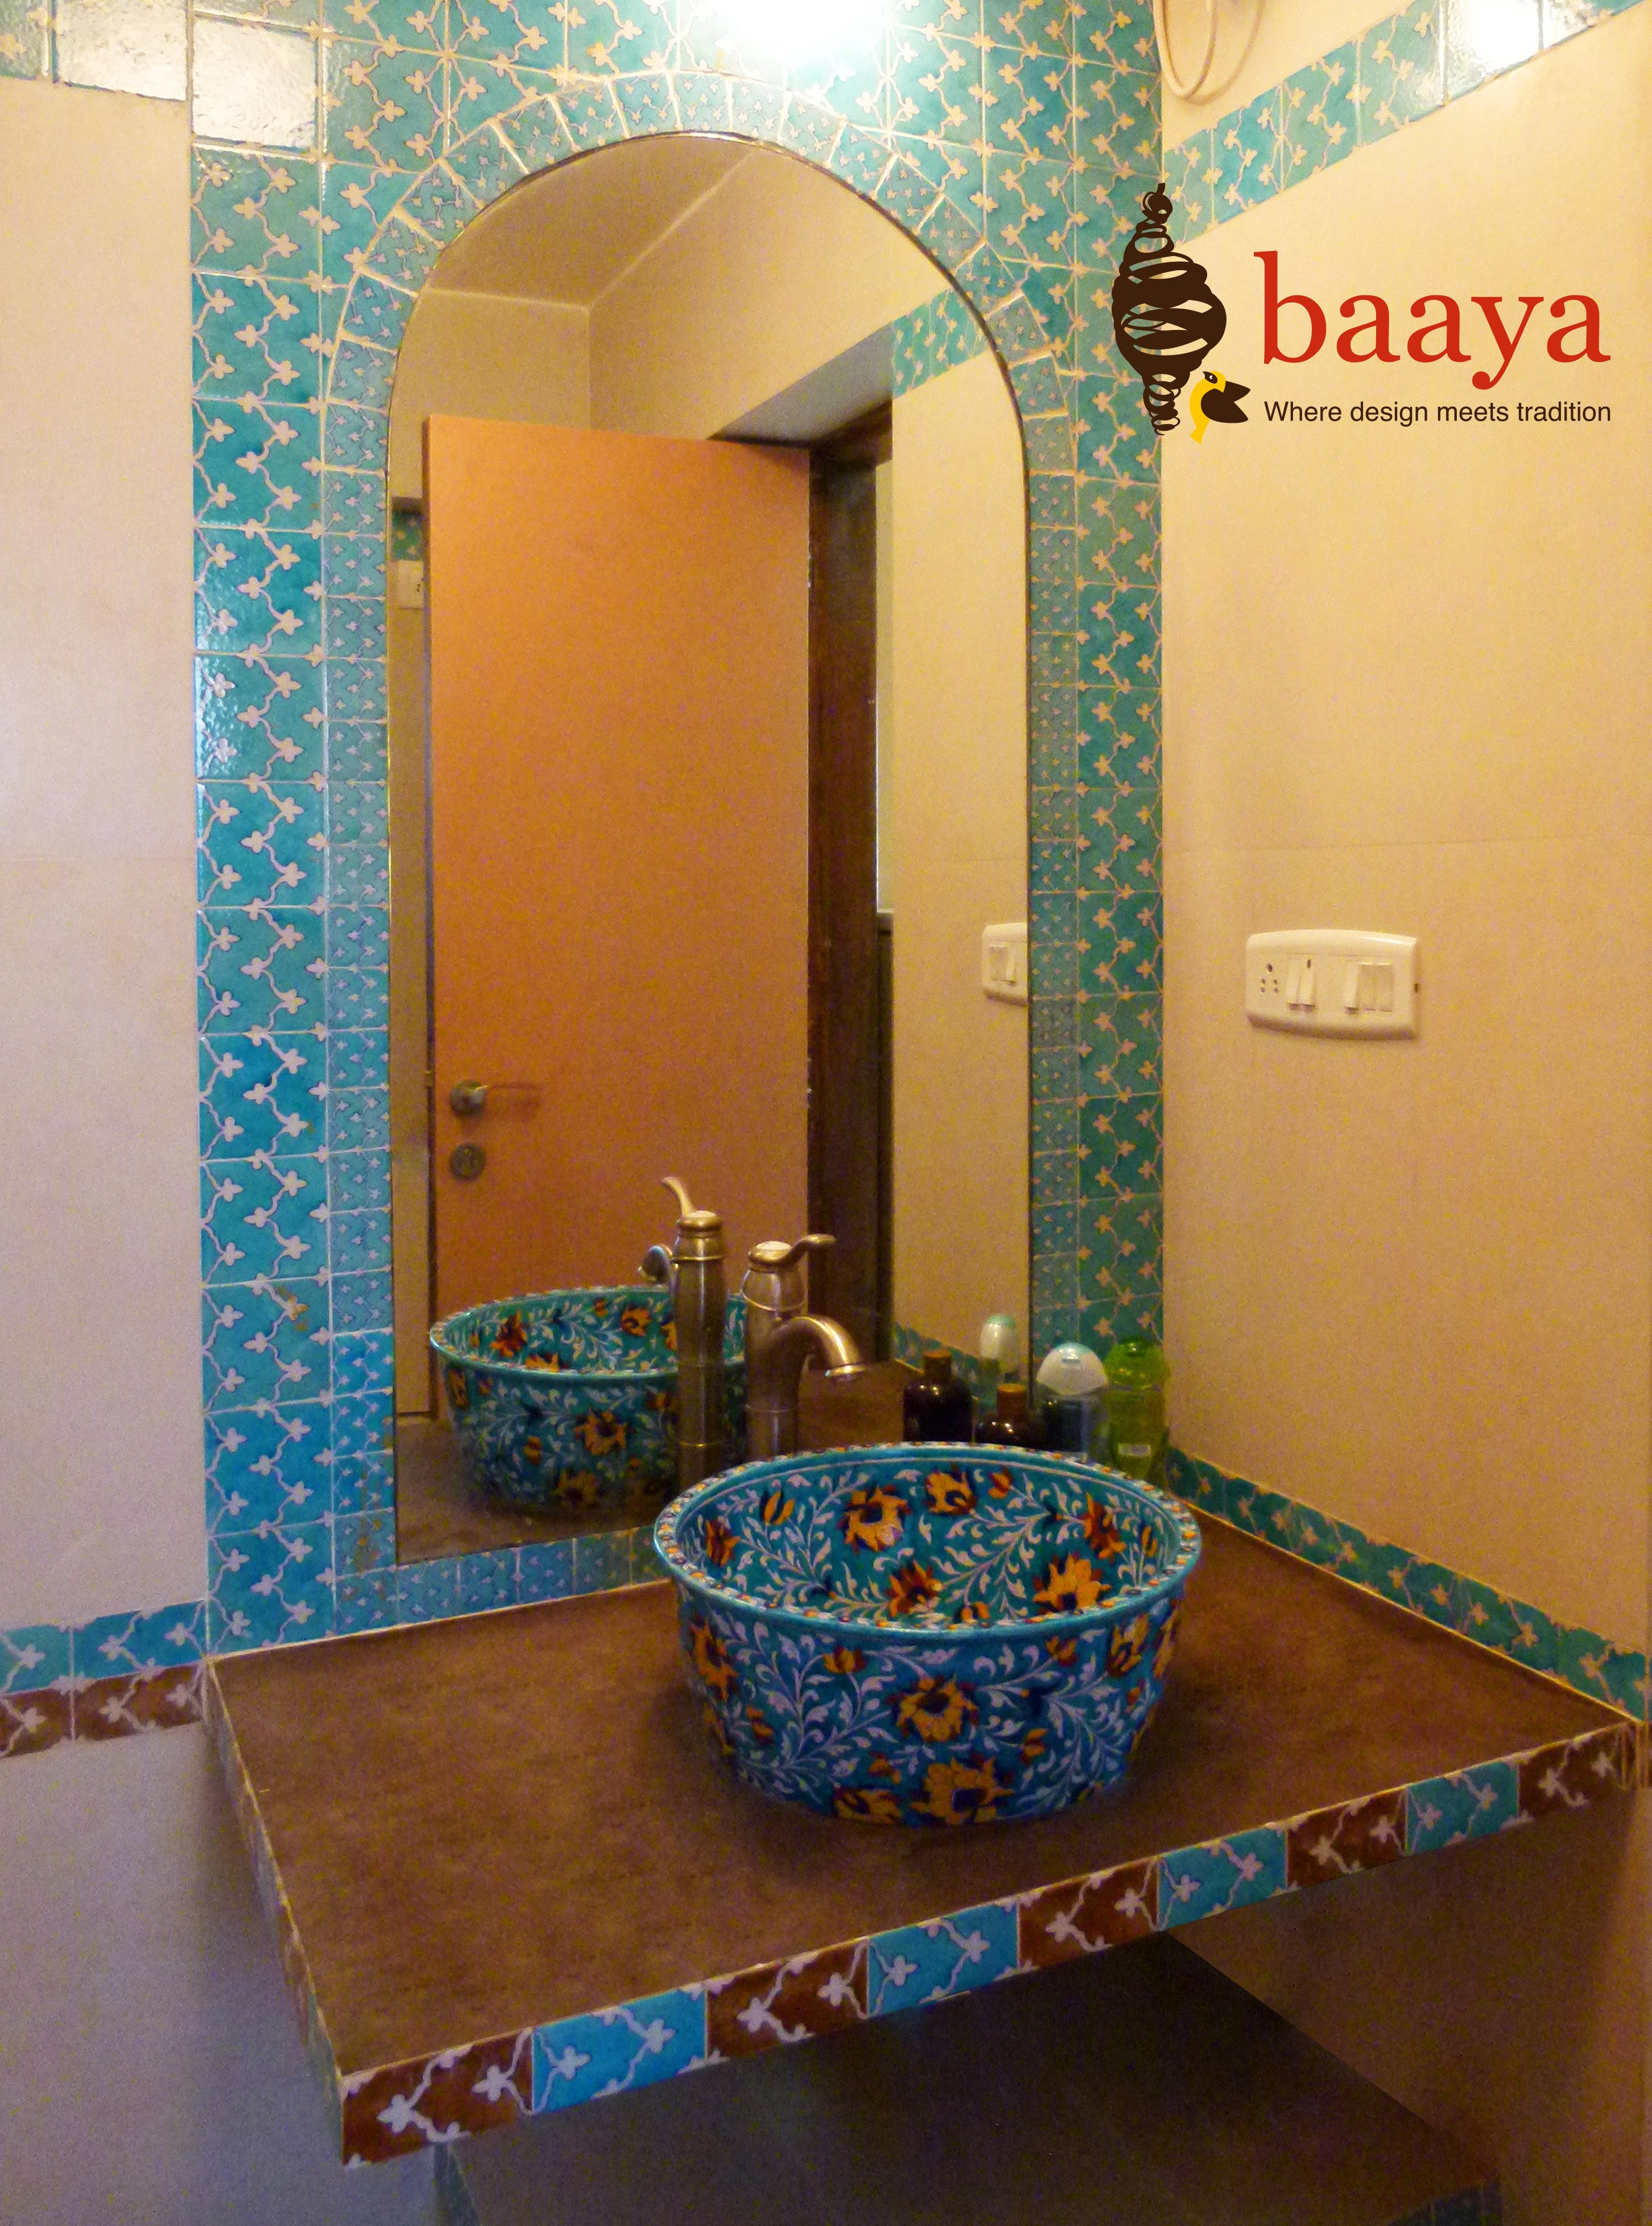 Bathroom Designed By Blue Pottery Tiles And Wash Basin And Art Form From Jaipur Blue Pottery Bathroom Wall Decor Wash Basin